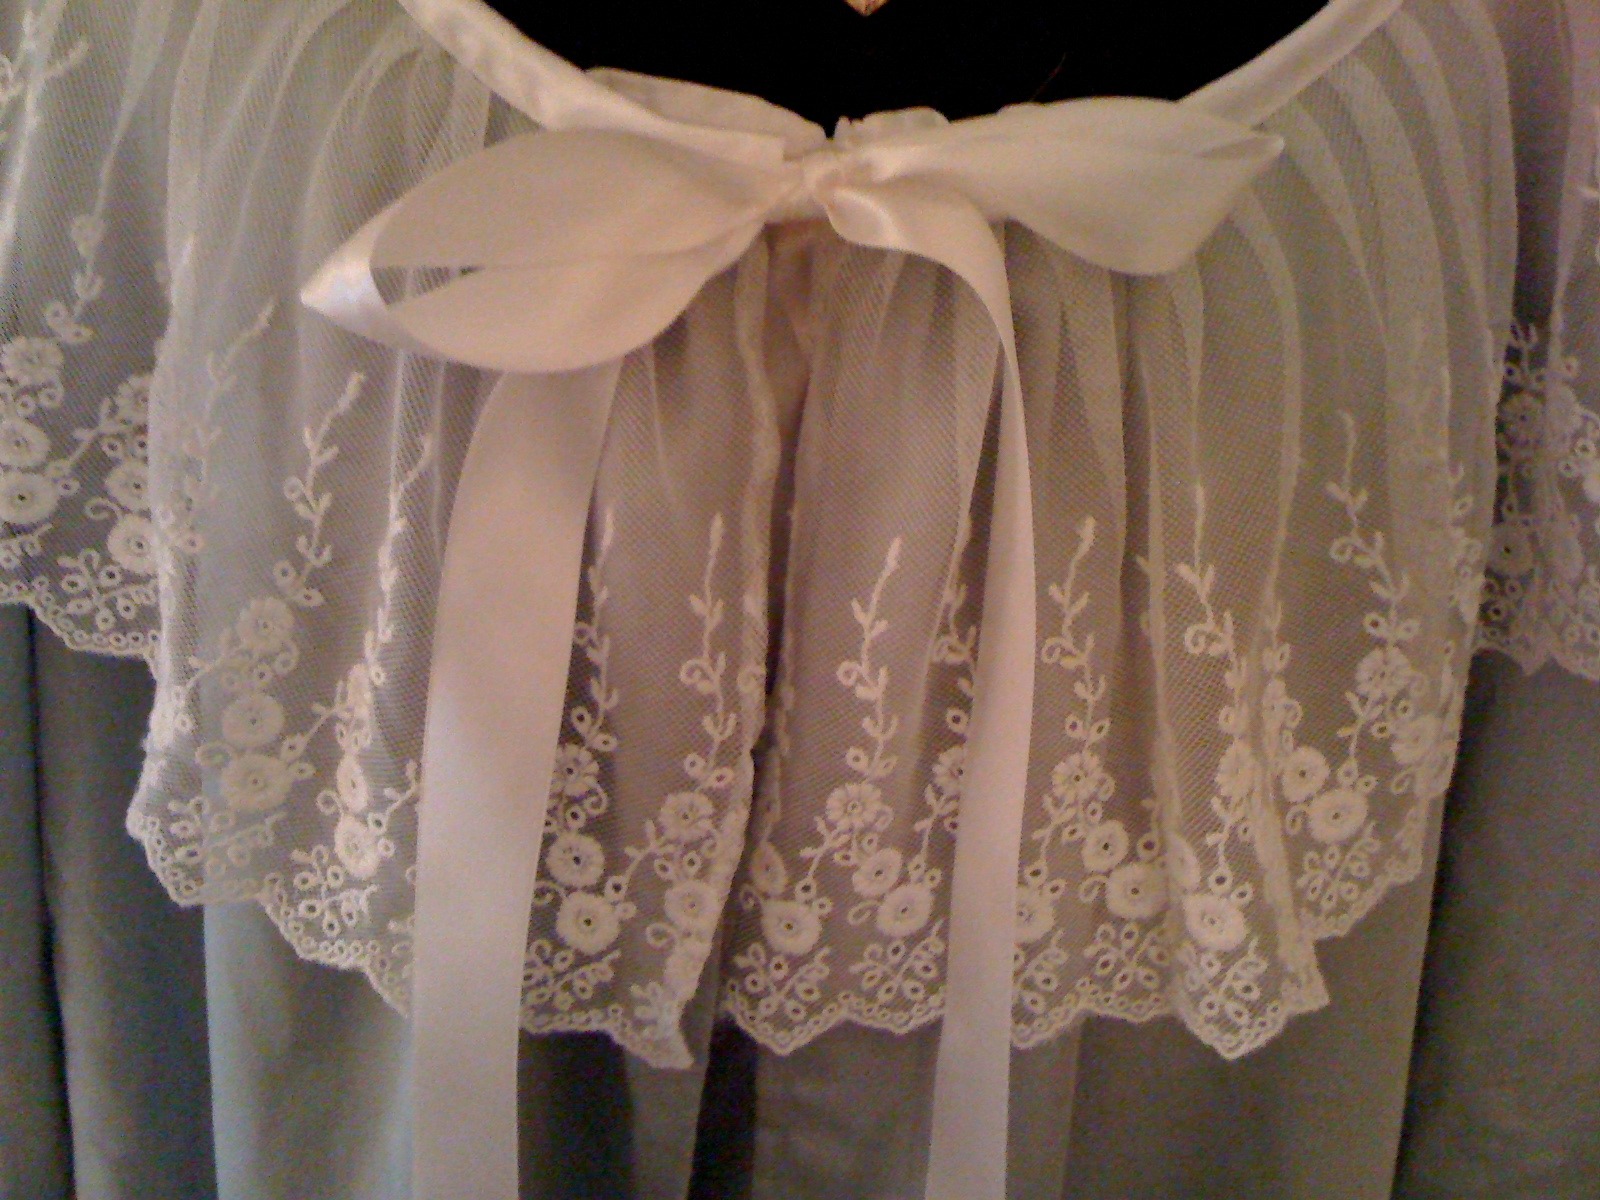 Making History: Late Victorian Dressing Gown